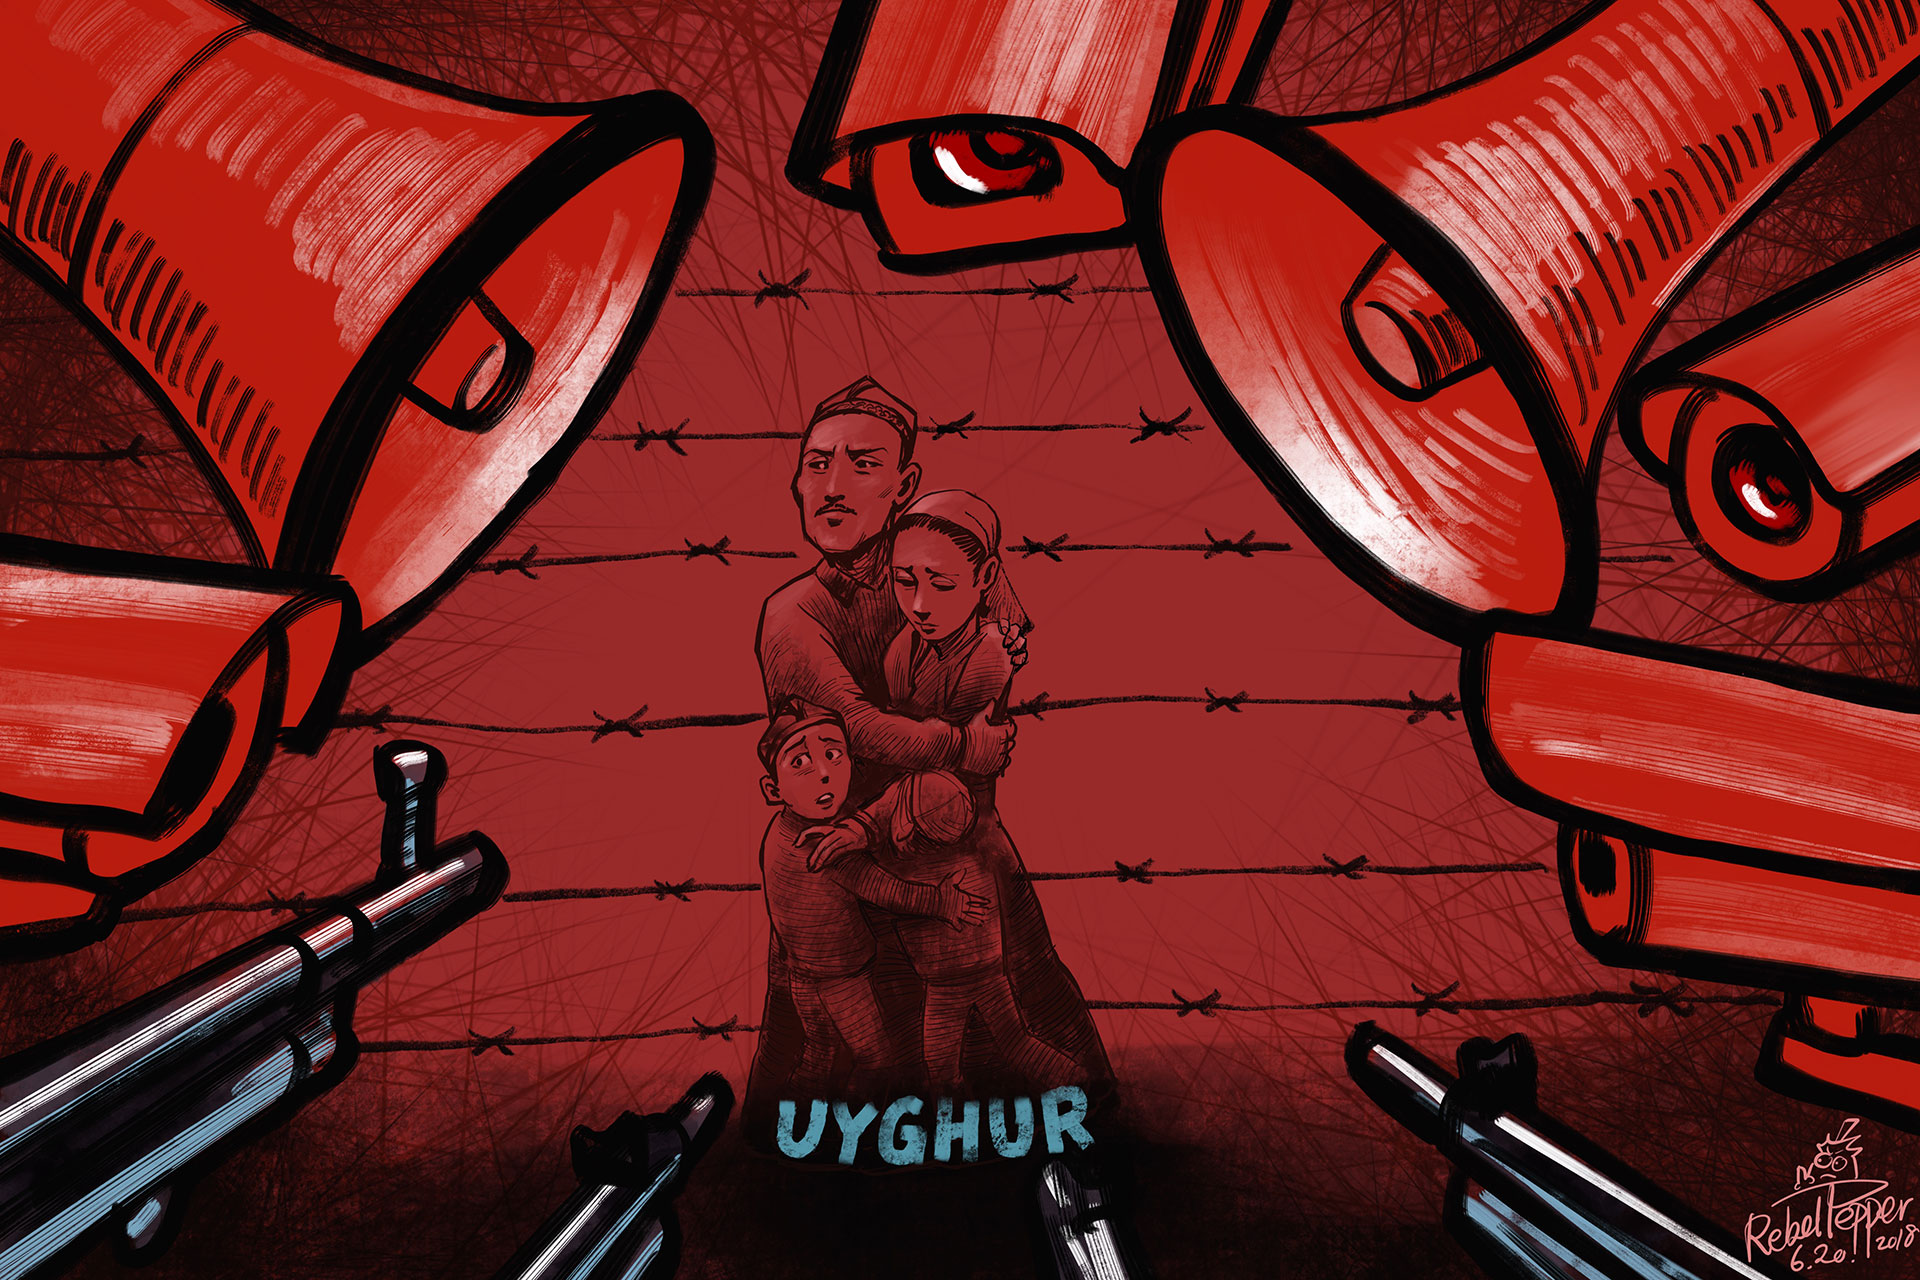 Turkey calls China's treatment of Uyghurs 'a great embarrassment for humanity'